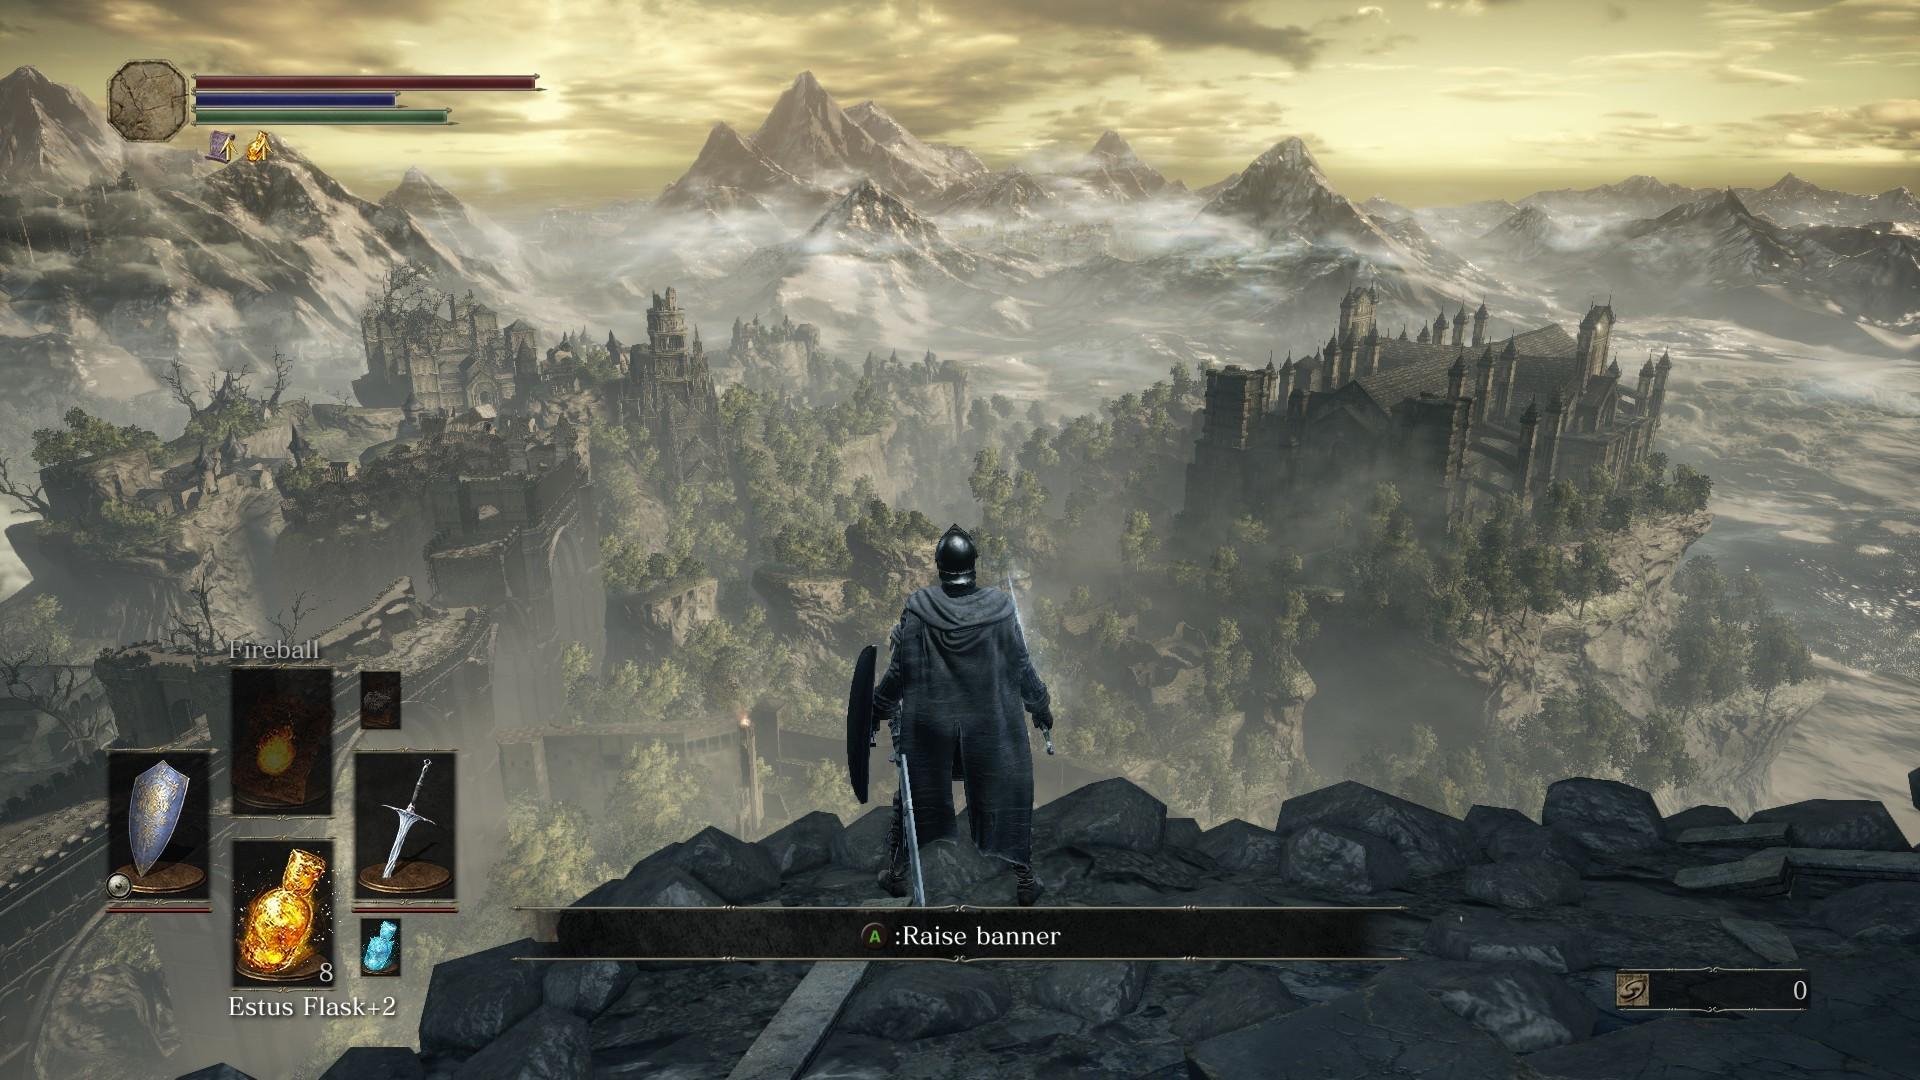 1920x1080 Dark Souls III does a terrific job with scale and providing beautiful vistas